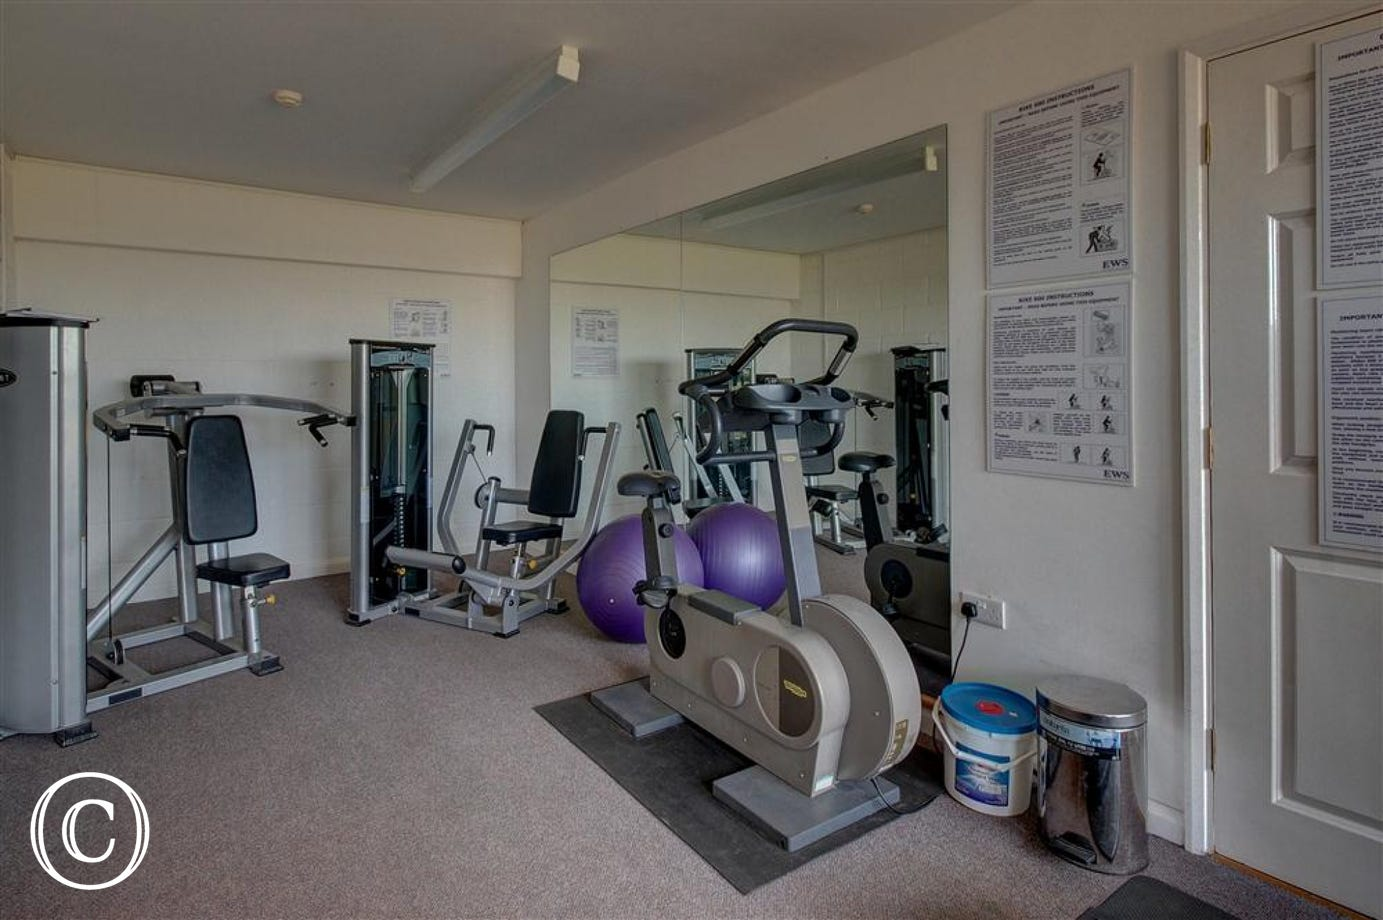 Work up a sweat in this gym which is sitauted in the Leisure Hall on the Blyth View complex.